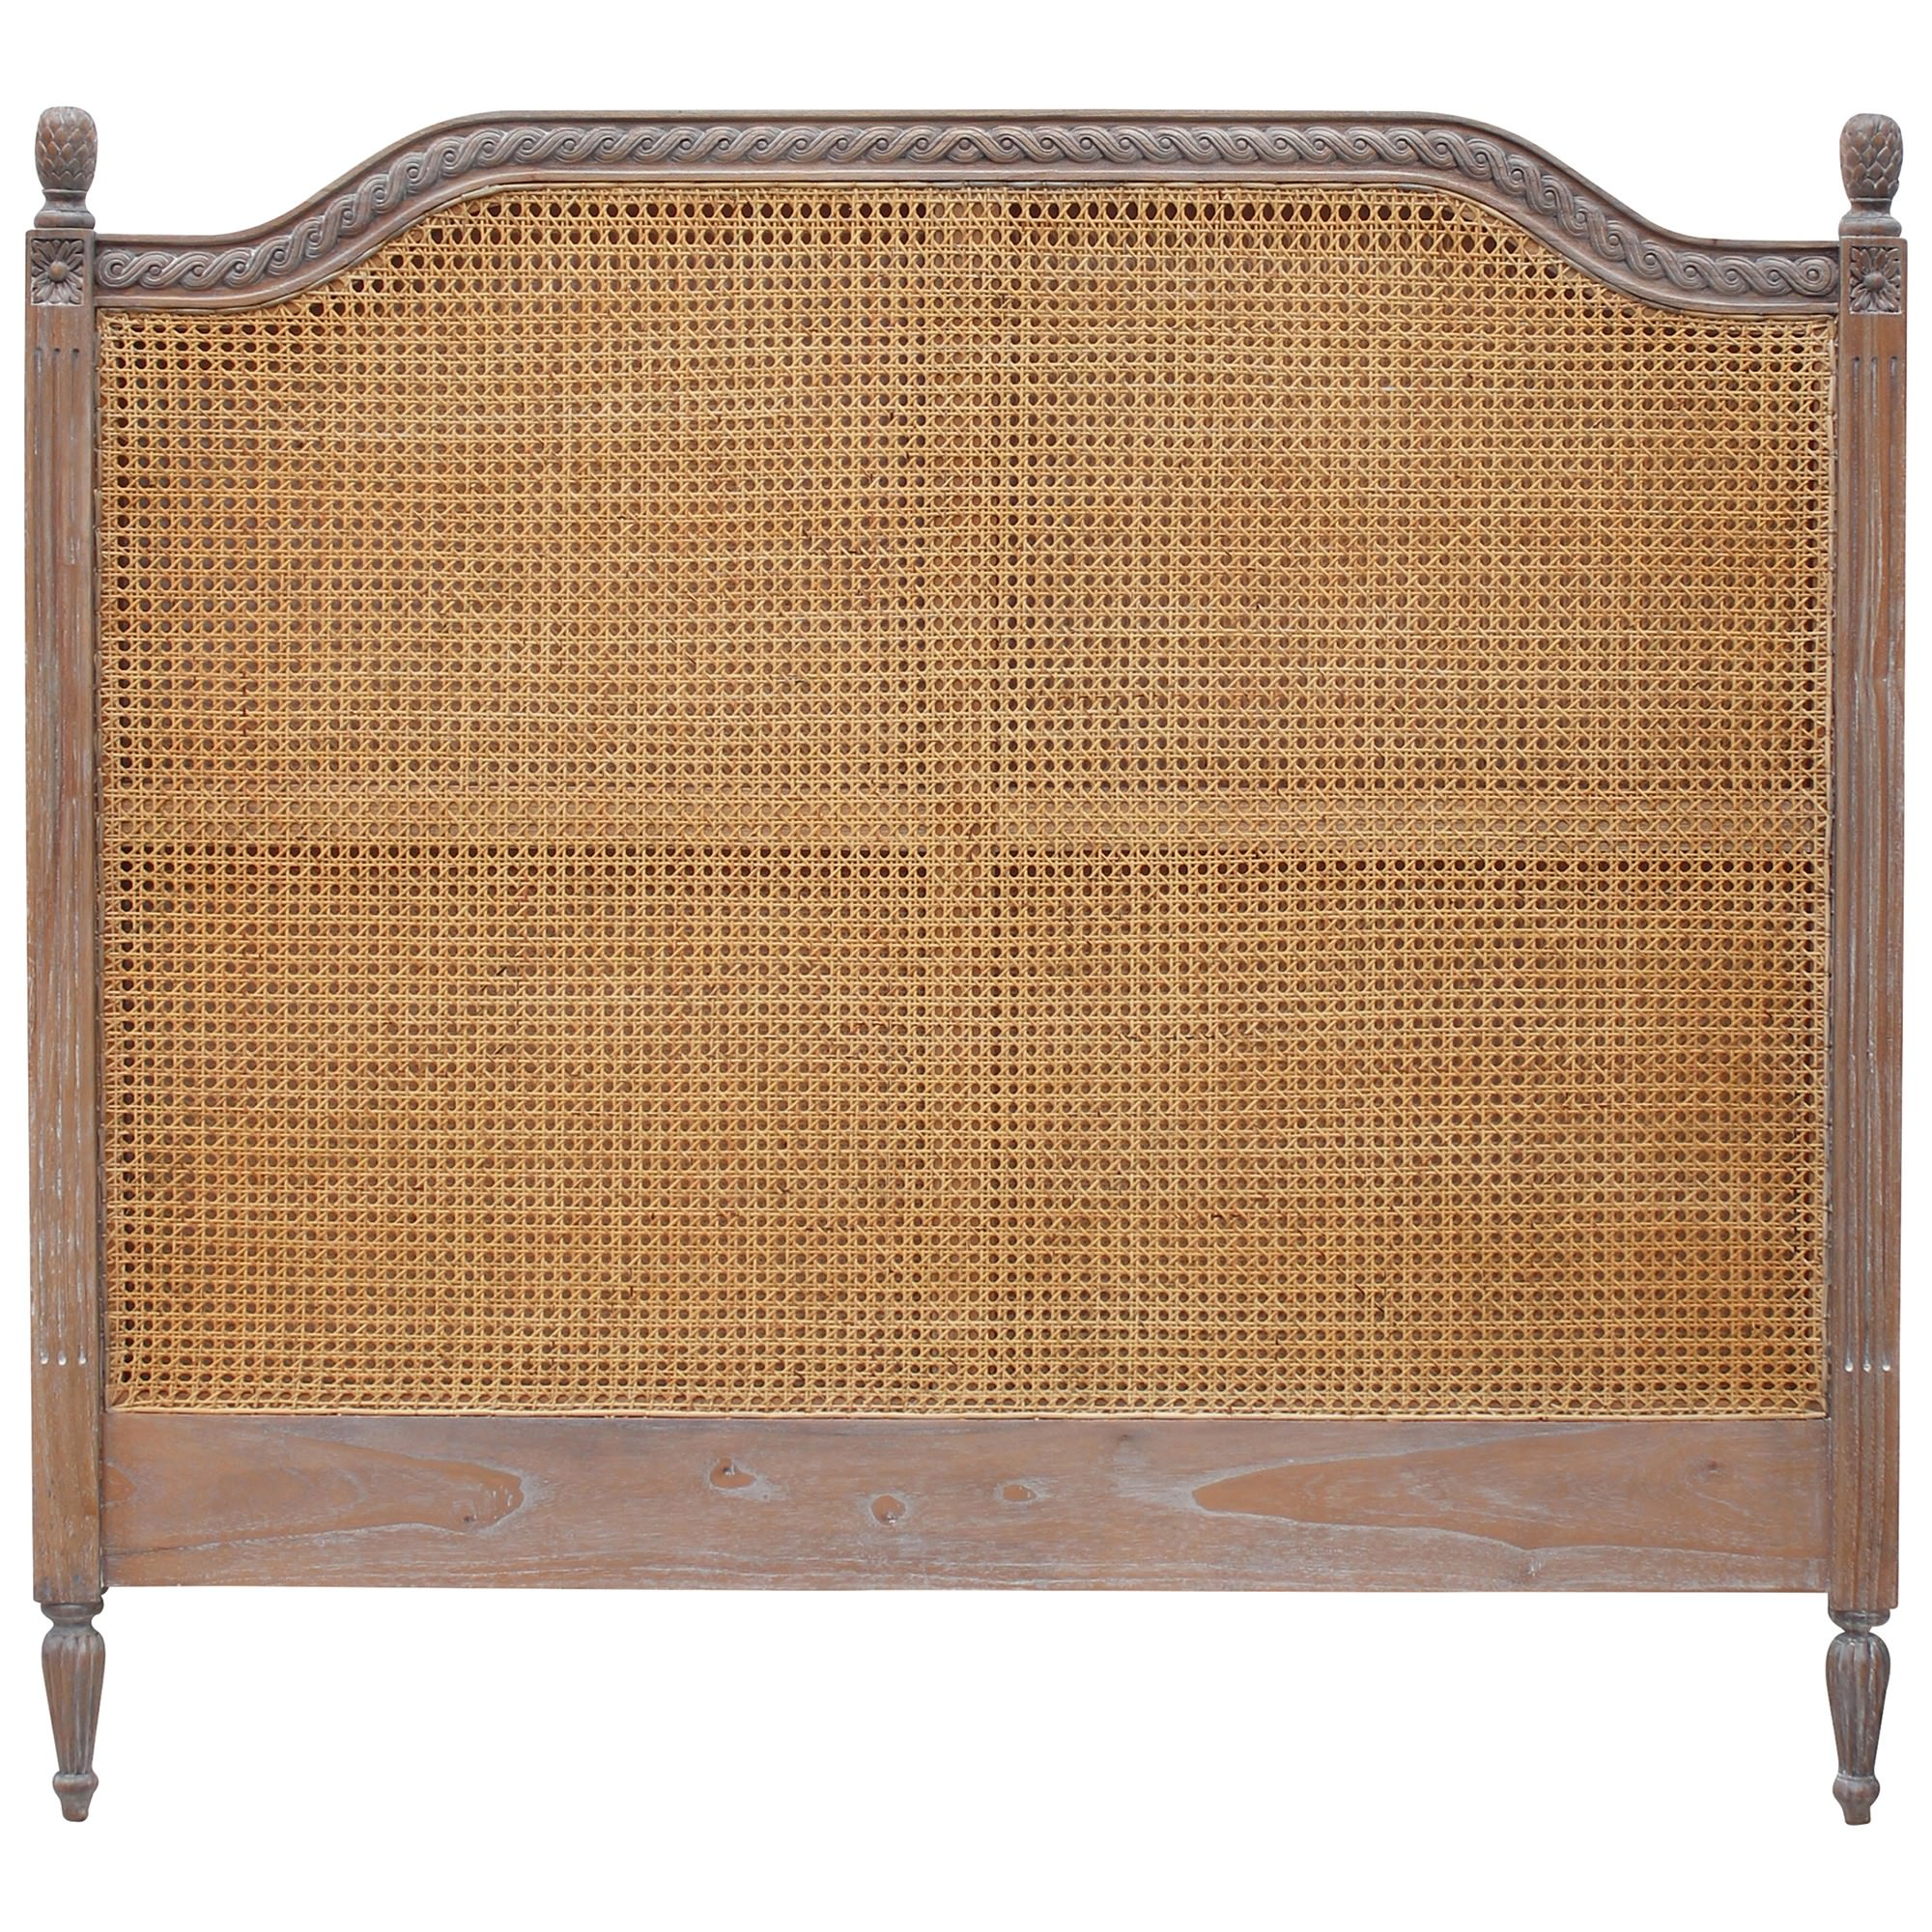 Lapalisse Hand Crafted Mahogany Timber & Rattan Bed Headboard, Queen, Weathered Oak